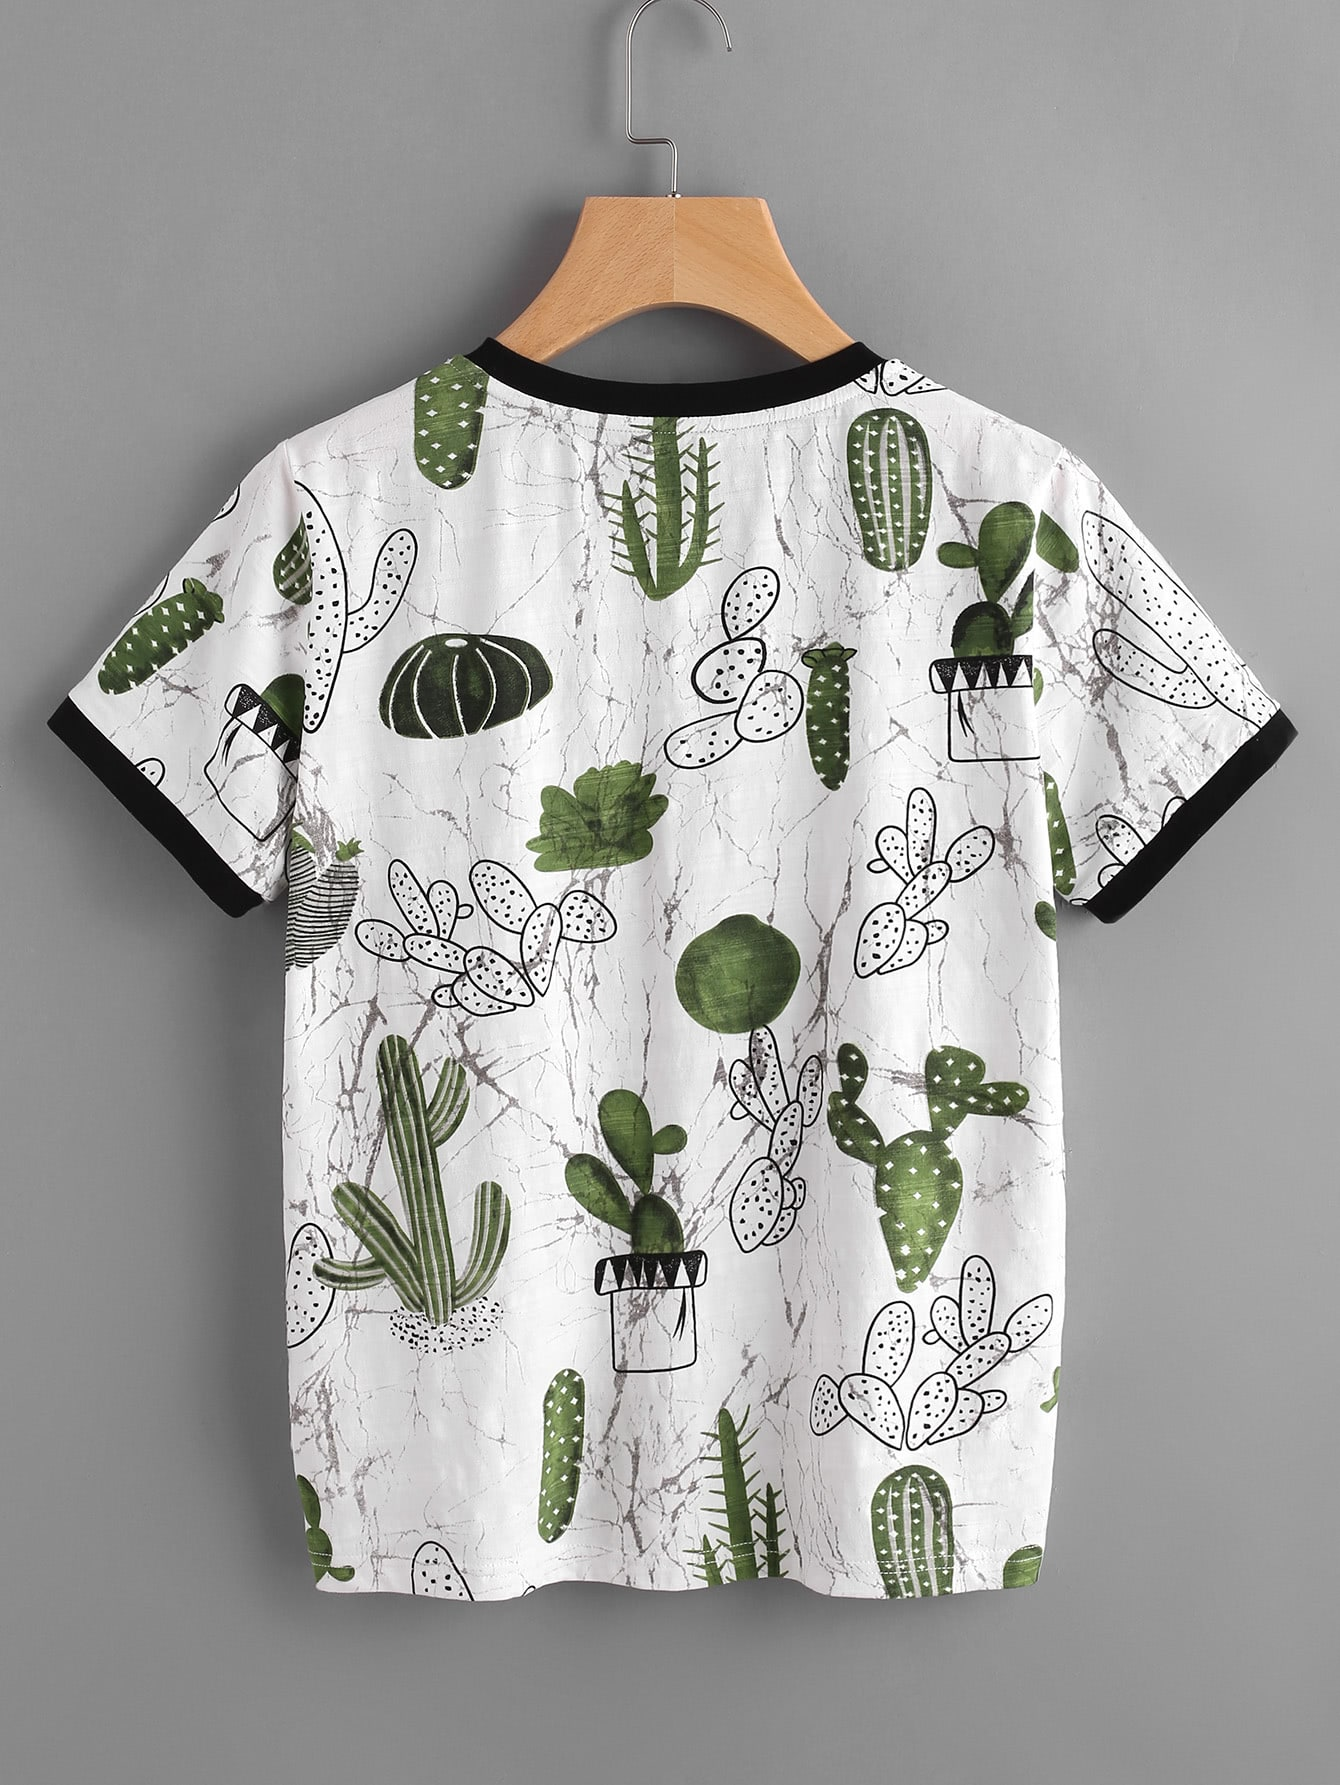 imprimer cactus t shirt et le marbre french shein sheinside. Black Bedroom Furniture Sets. Home Design Ideas